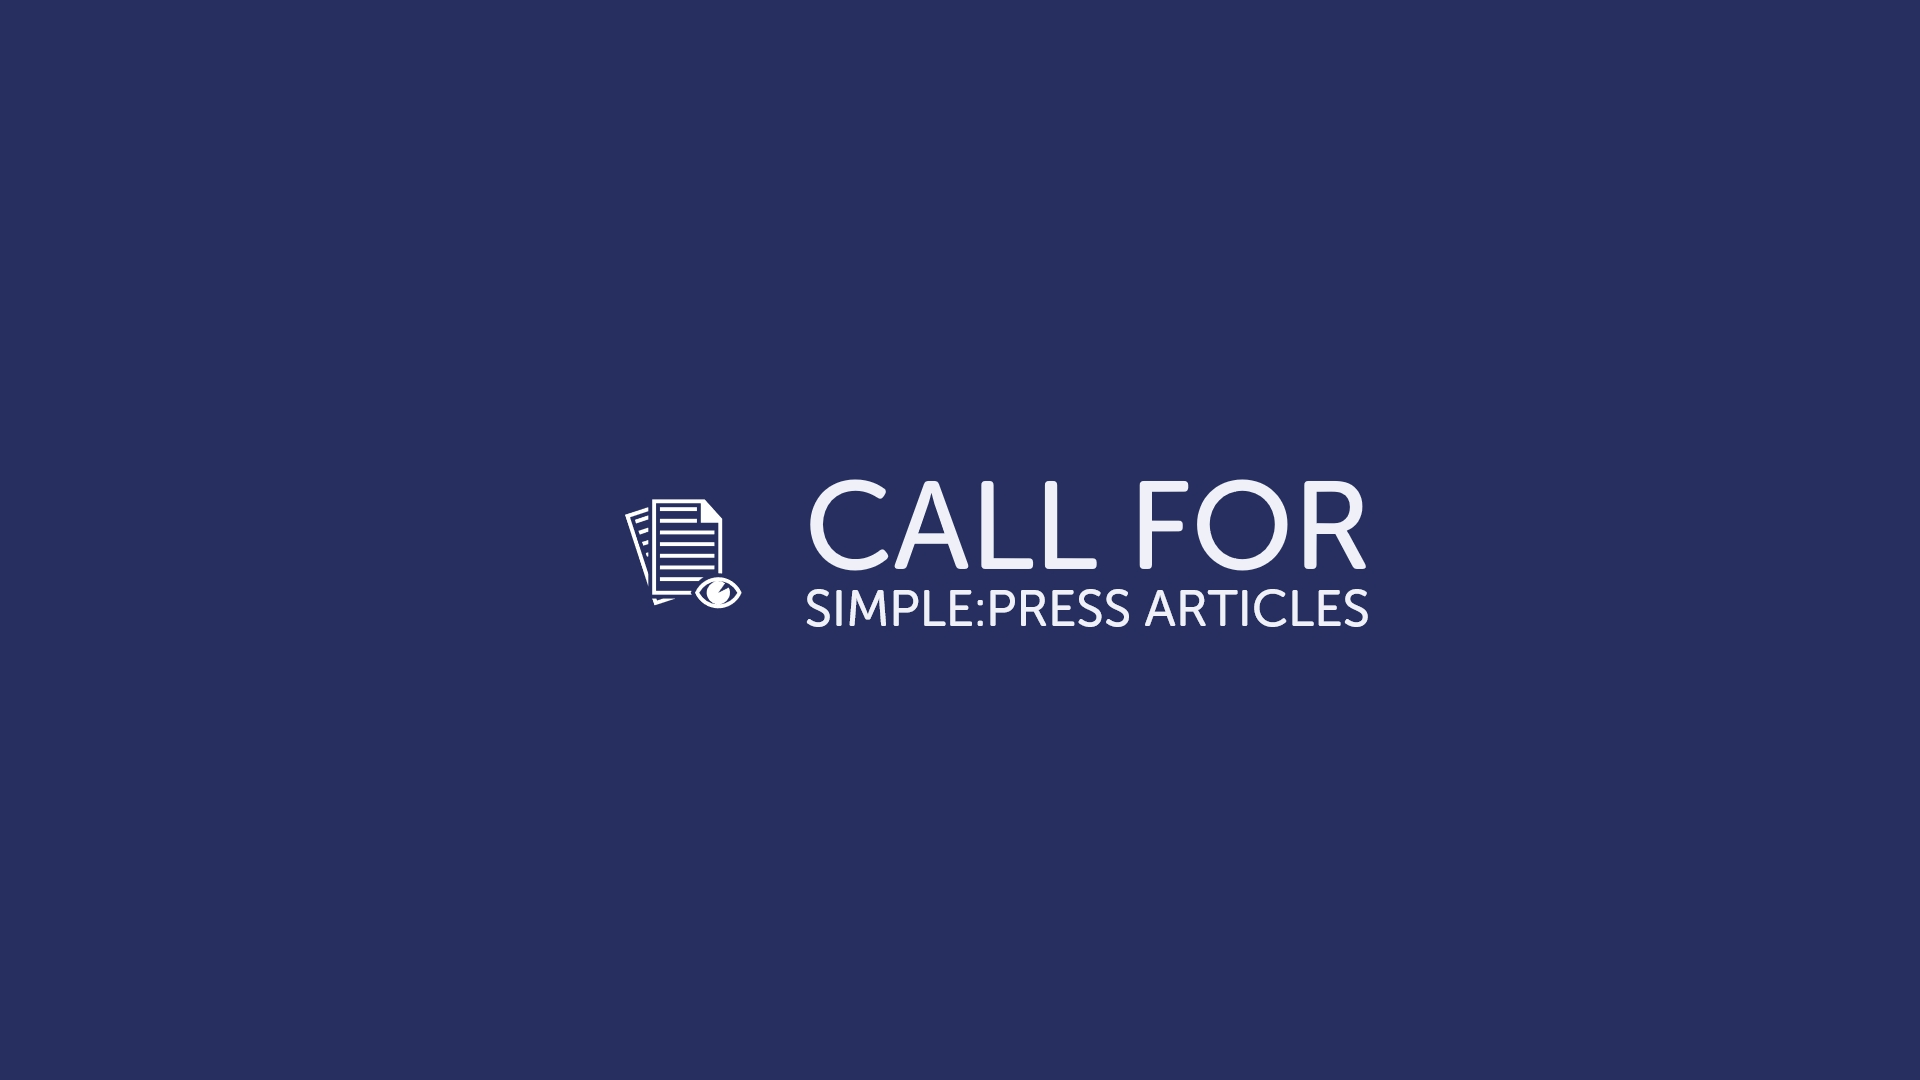 Simple_Press Call For Articles